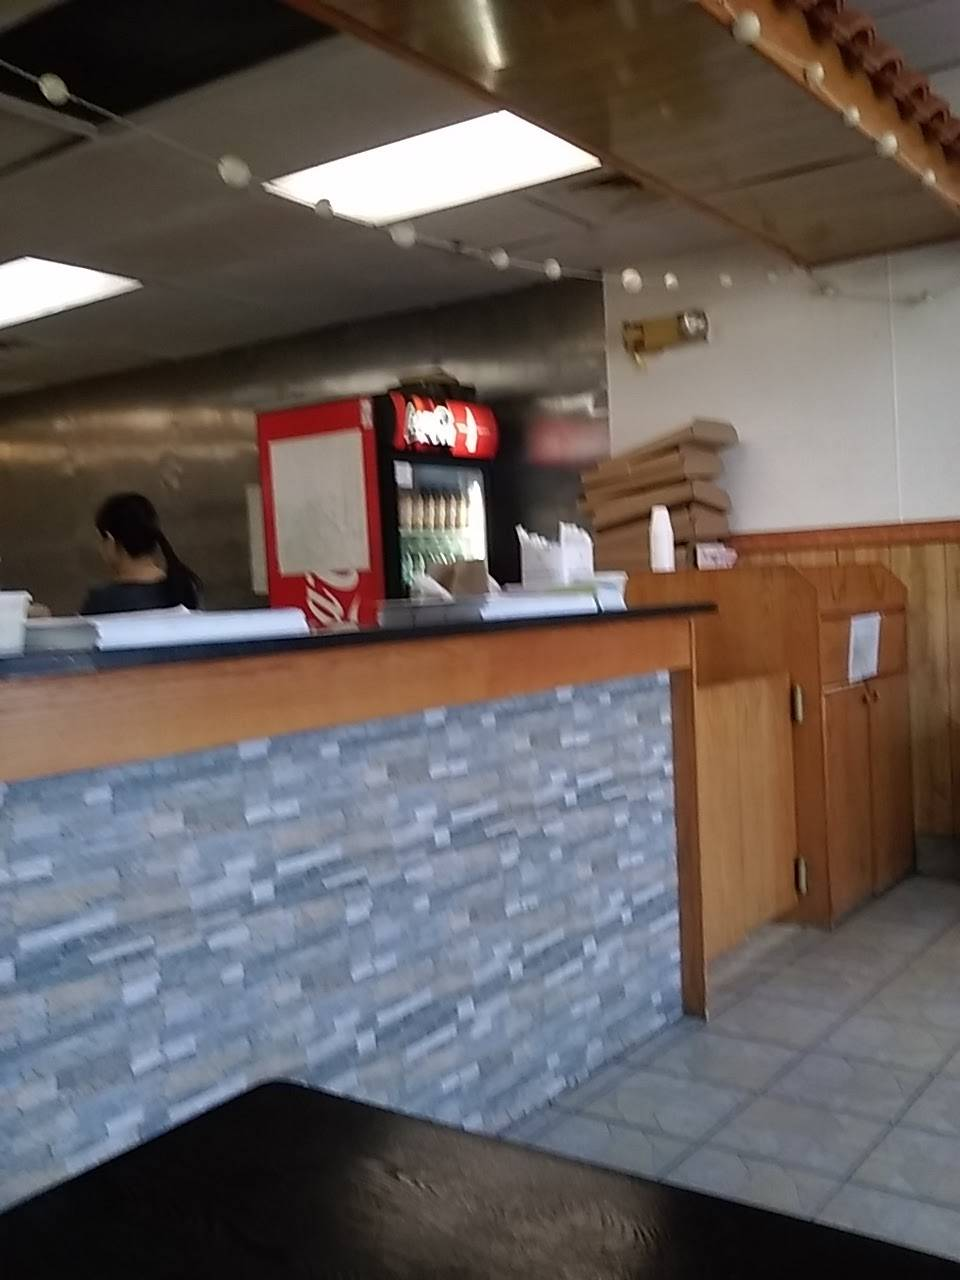 Ming Moon | meal delivery | 1380 Berlin Turnpike #3, Wethersfield, CT 06109, USA | 8609562686 OR +1 860-956-2686